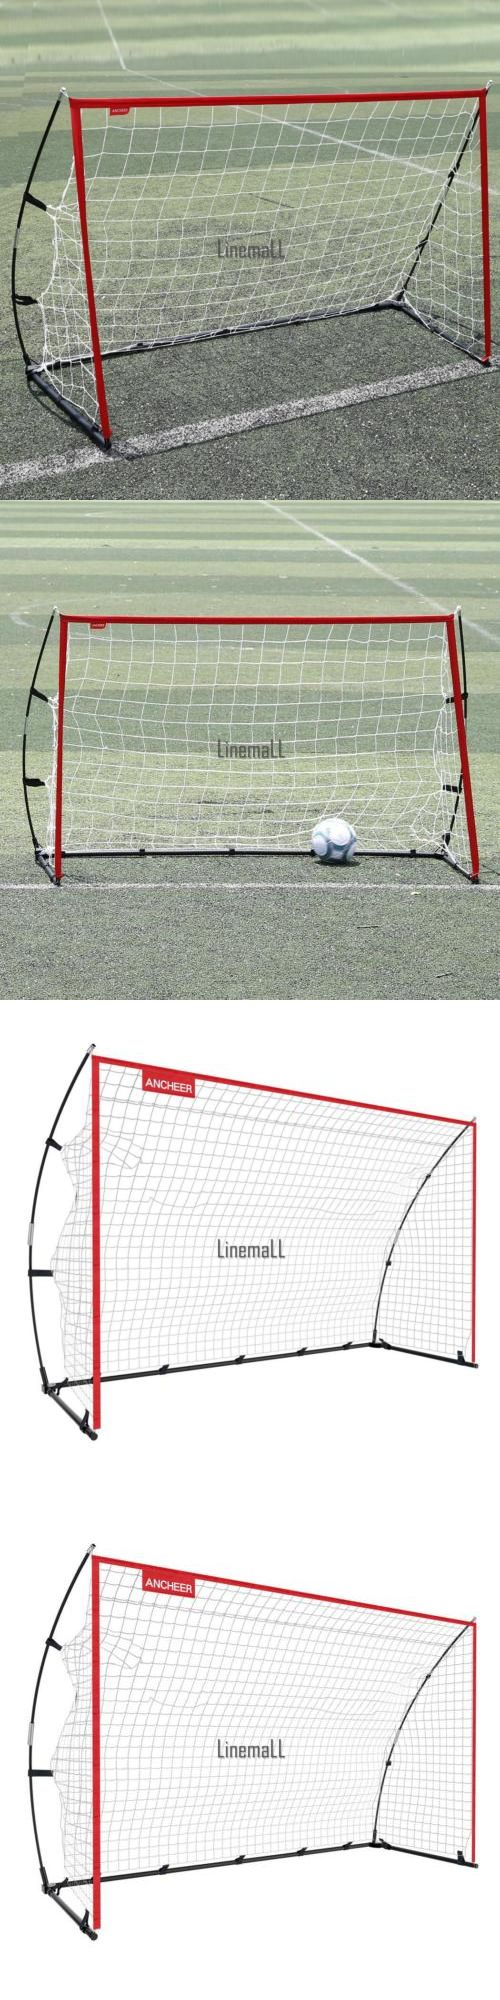 Training Aids 159119: 12 X 6Ft Football Soccer Goal Post Net With Bow Frame Outdoor Football Match -> BUY IT NOW ONLY: $58.28 on eBay!